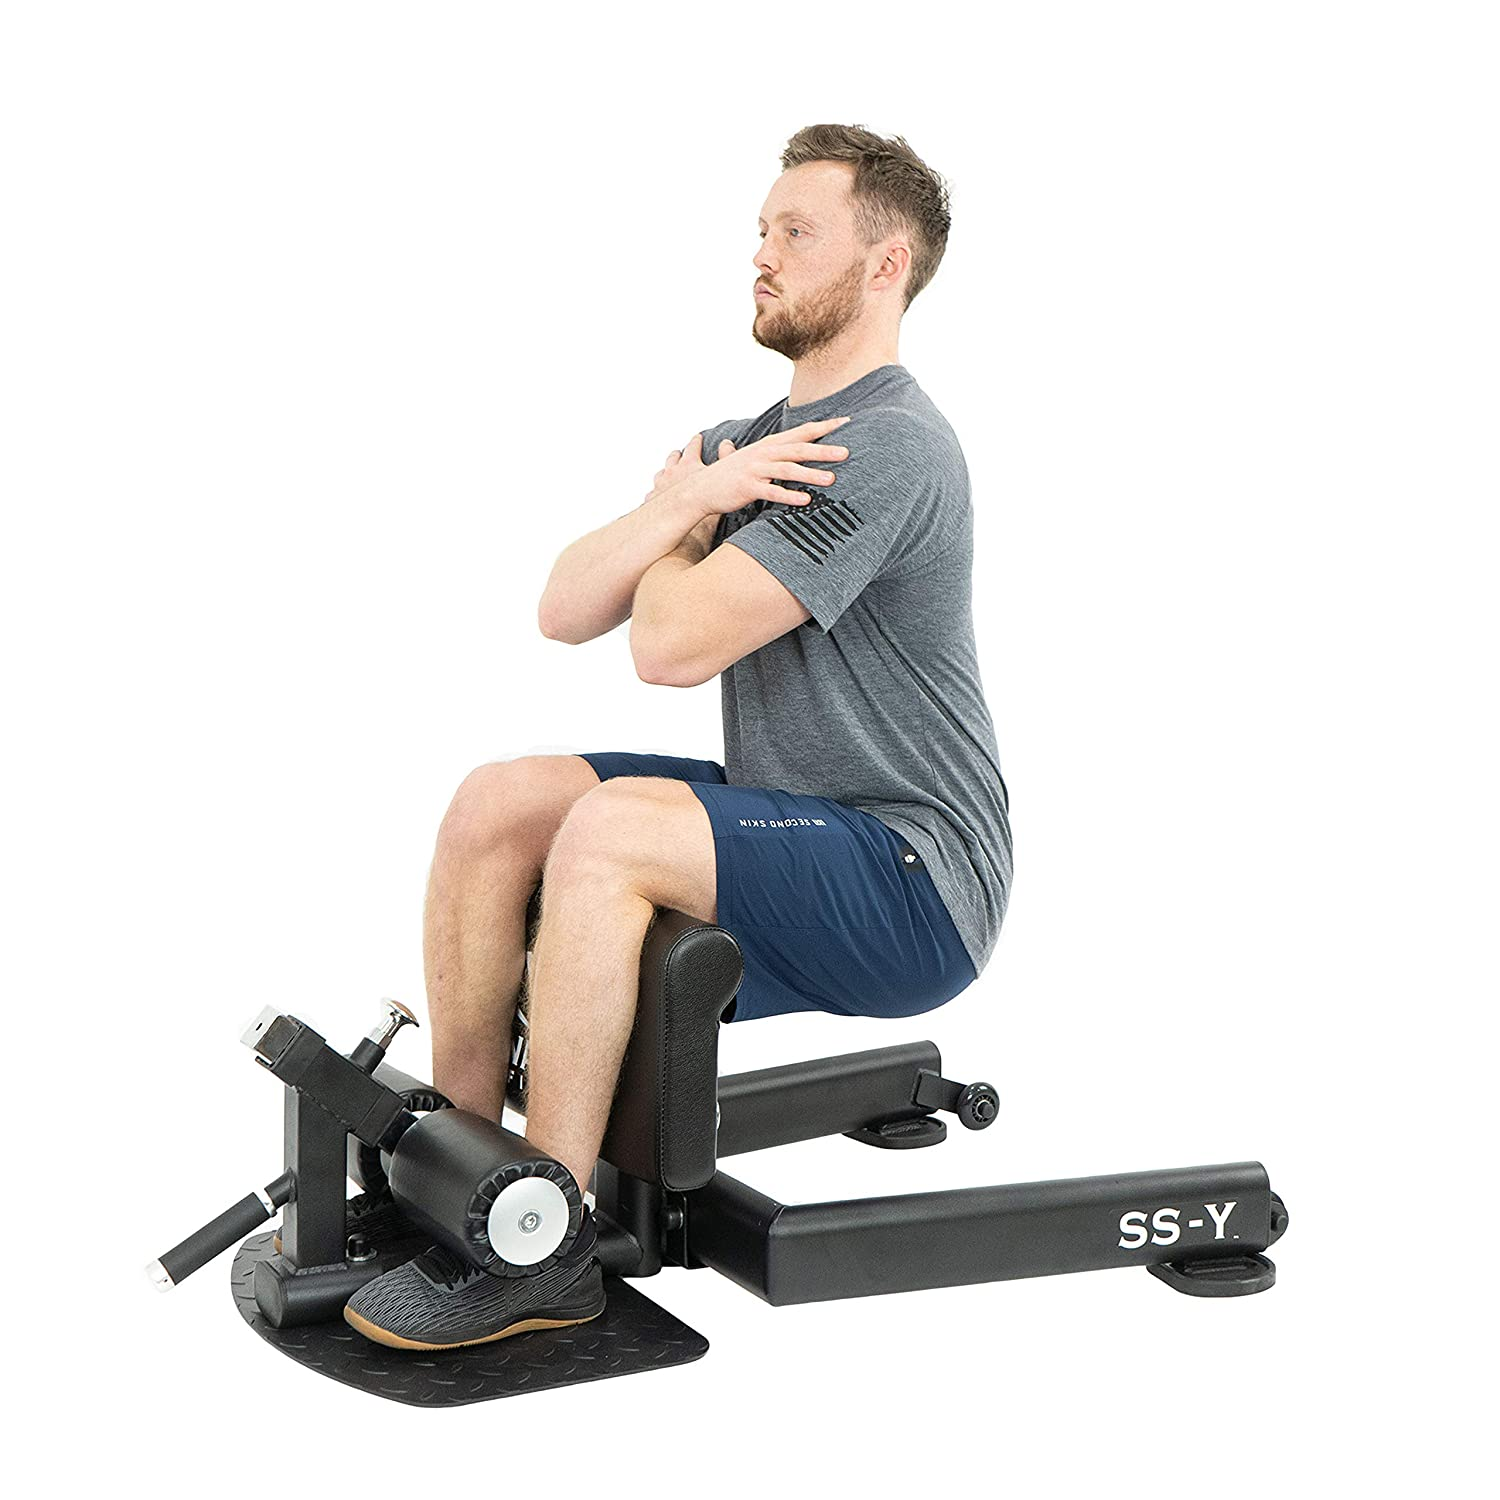 Buy Valor Fitness SS-Y Sissy Squat Machine Bench for Strengthening Legs,  Glutes, Core, and Calves with Wheels and Floor Foot Plate Online at Low  Prices in India - Amazon.in